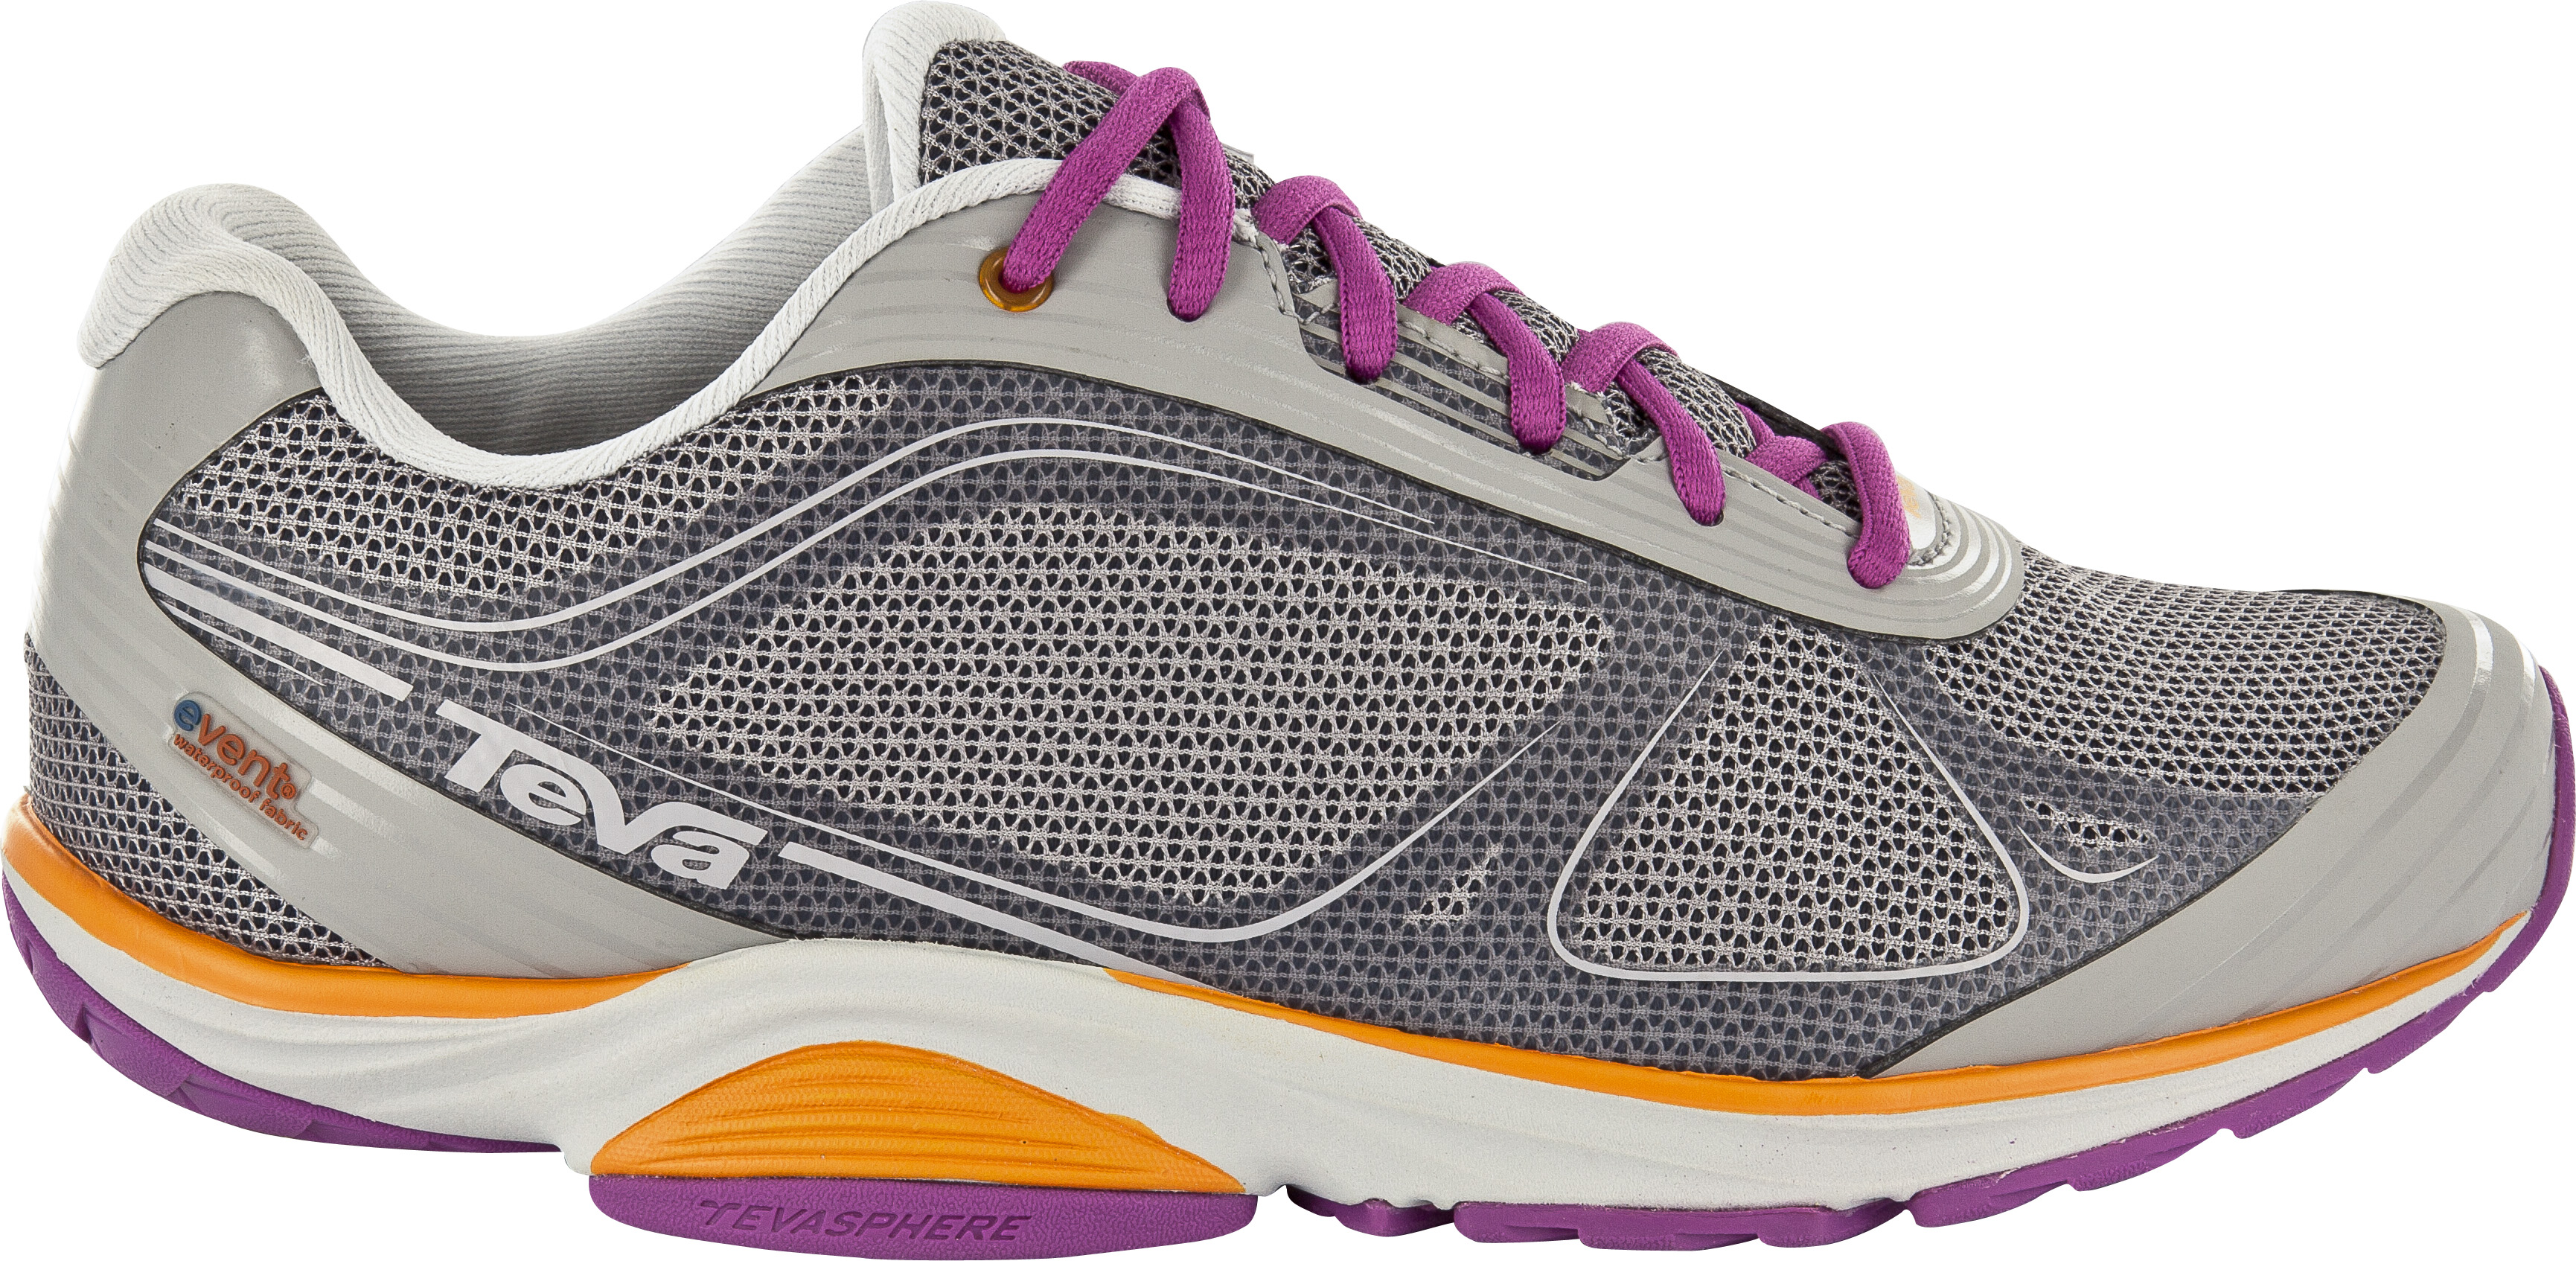 d70bc6165 Fitness kit I ve tested this week  TevaSphere Speed shoes